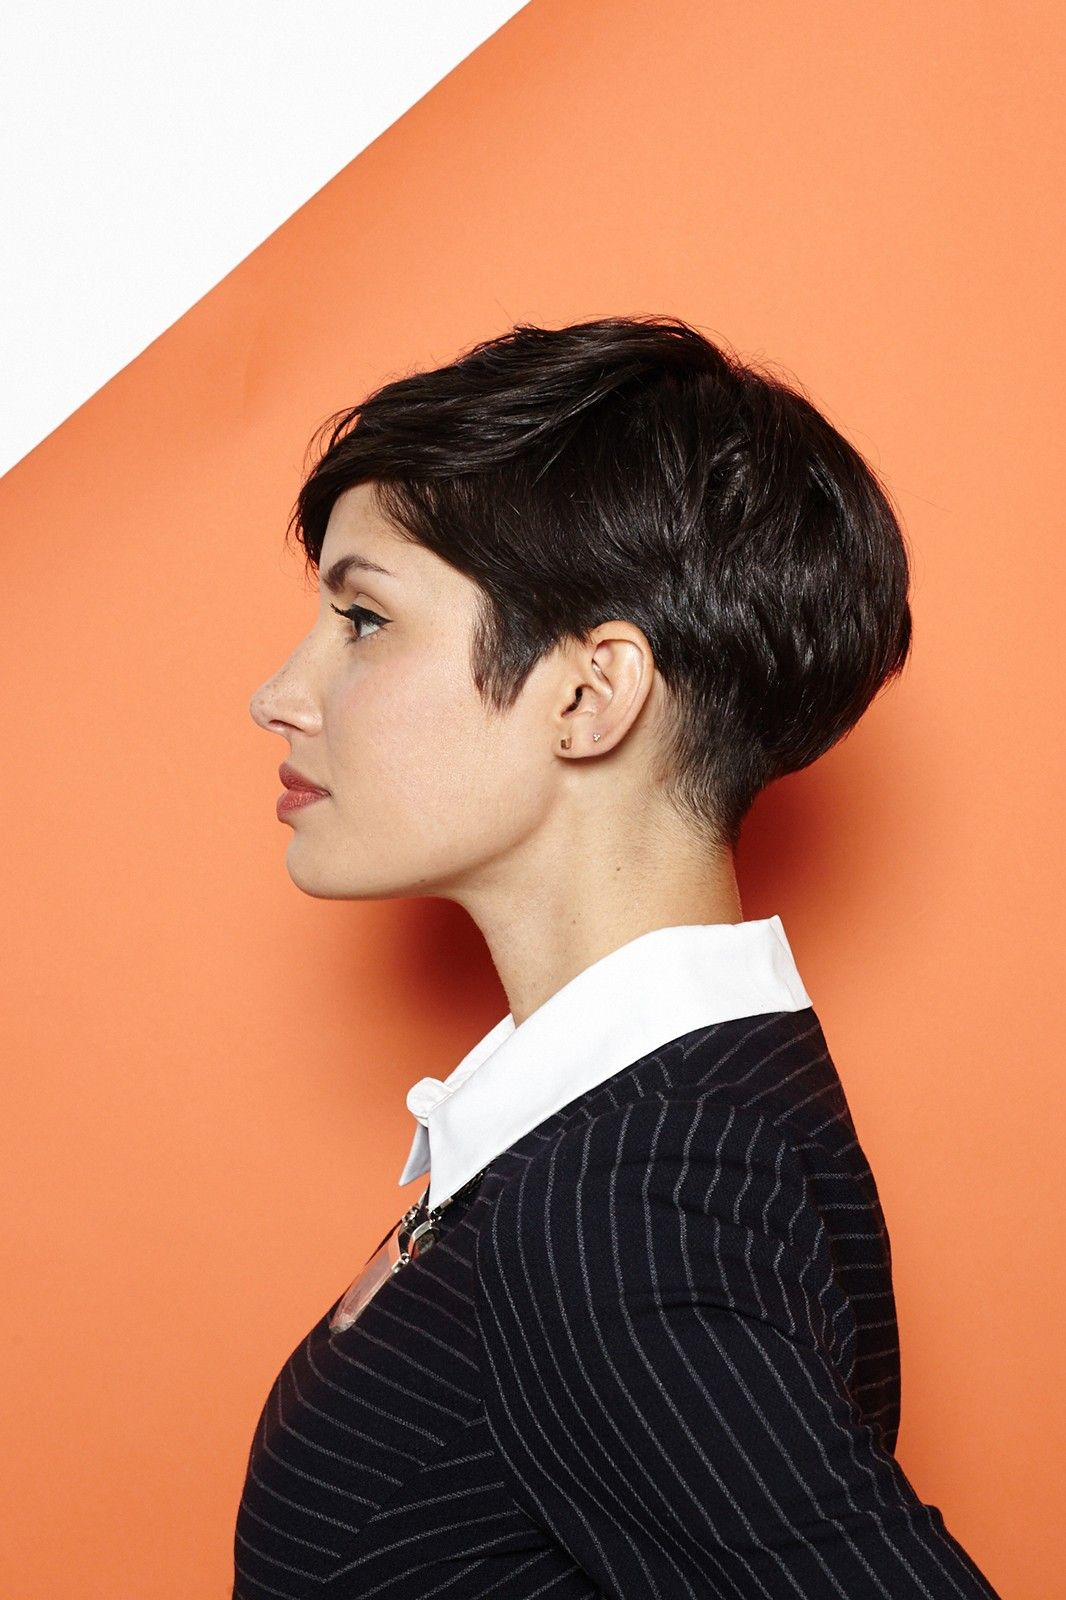 Pixie hairstyles new styles for really short hair my hair short